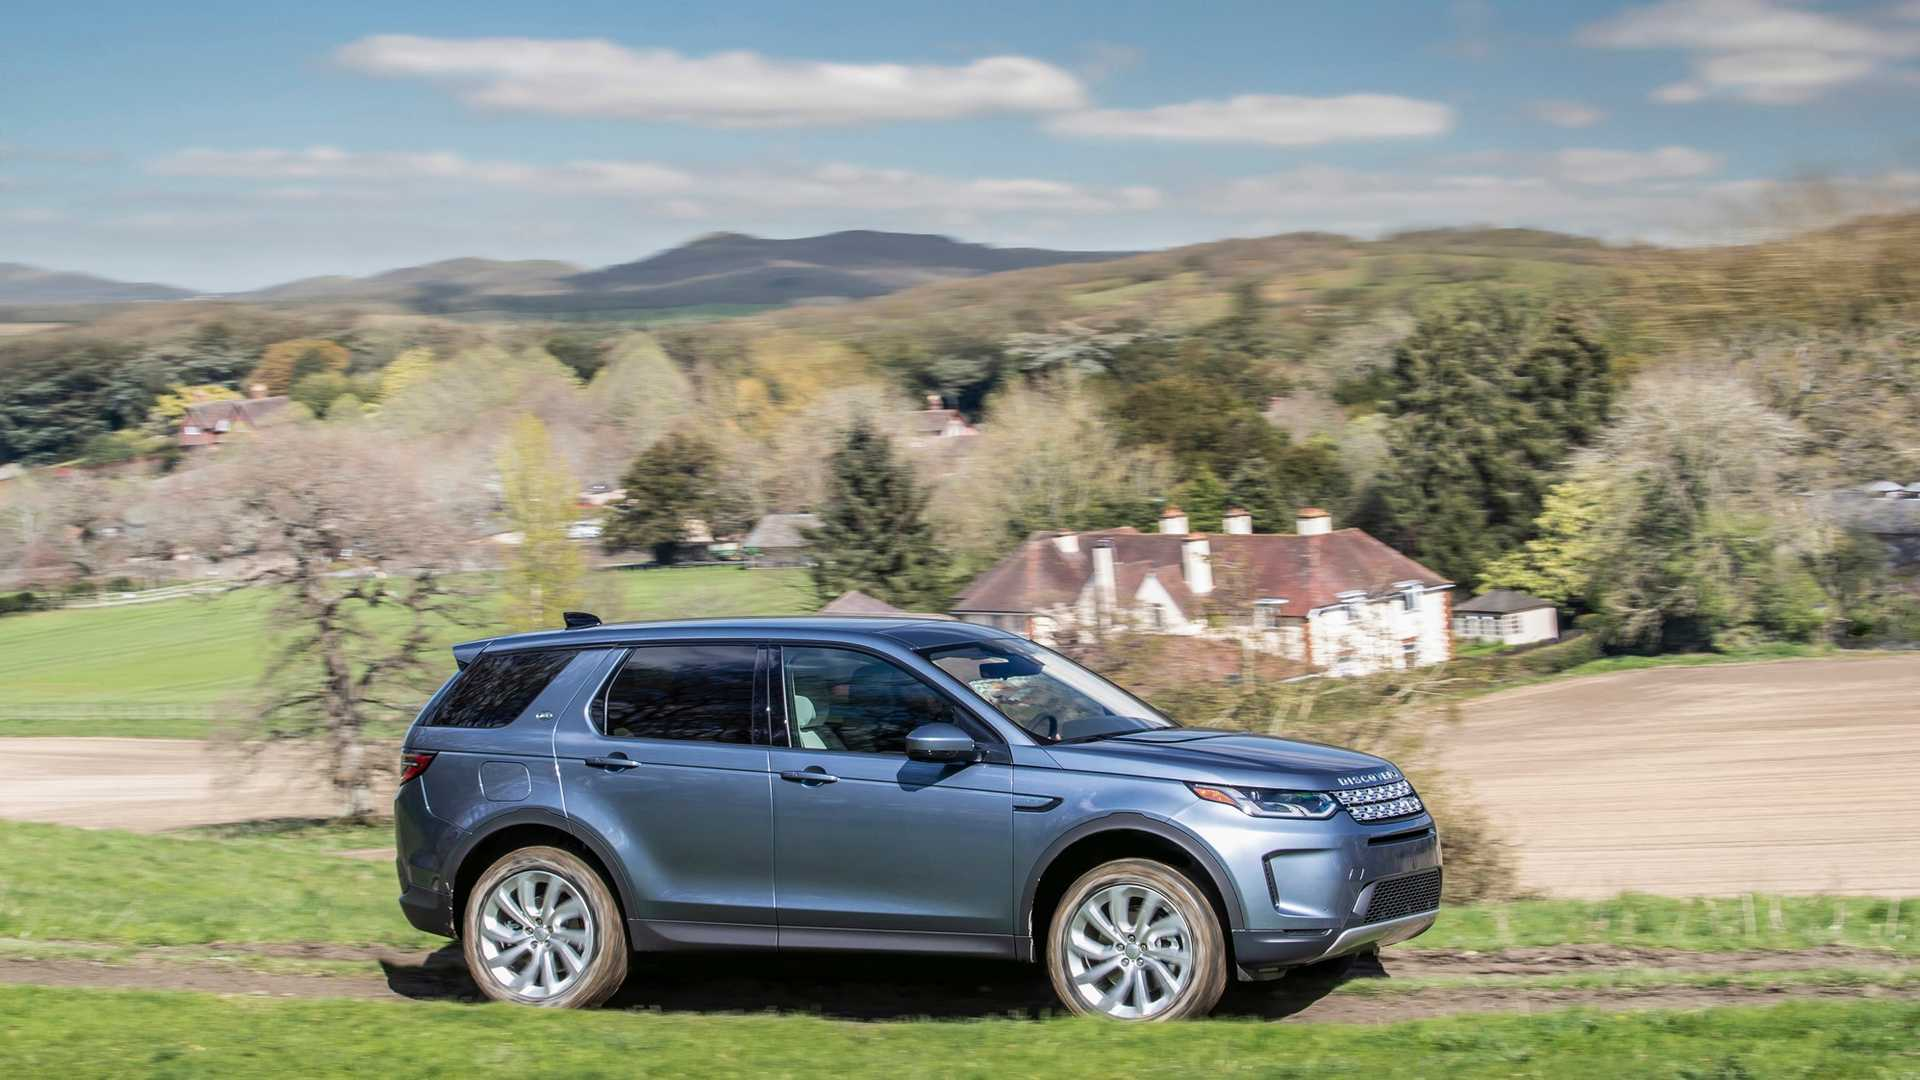 2020-land-rover-discovery-sport (24).jpg